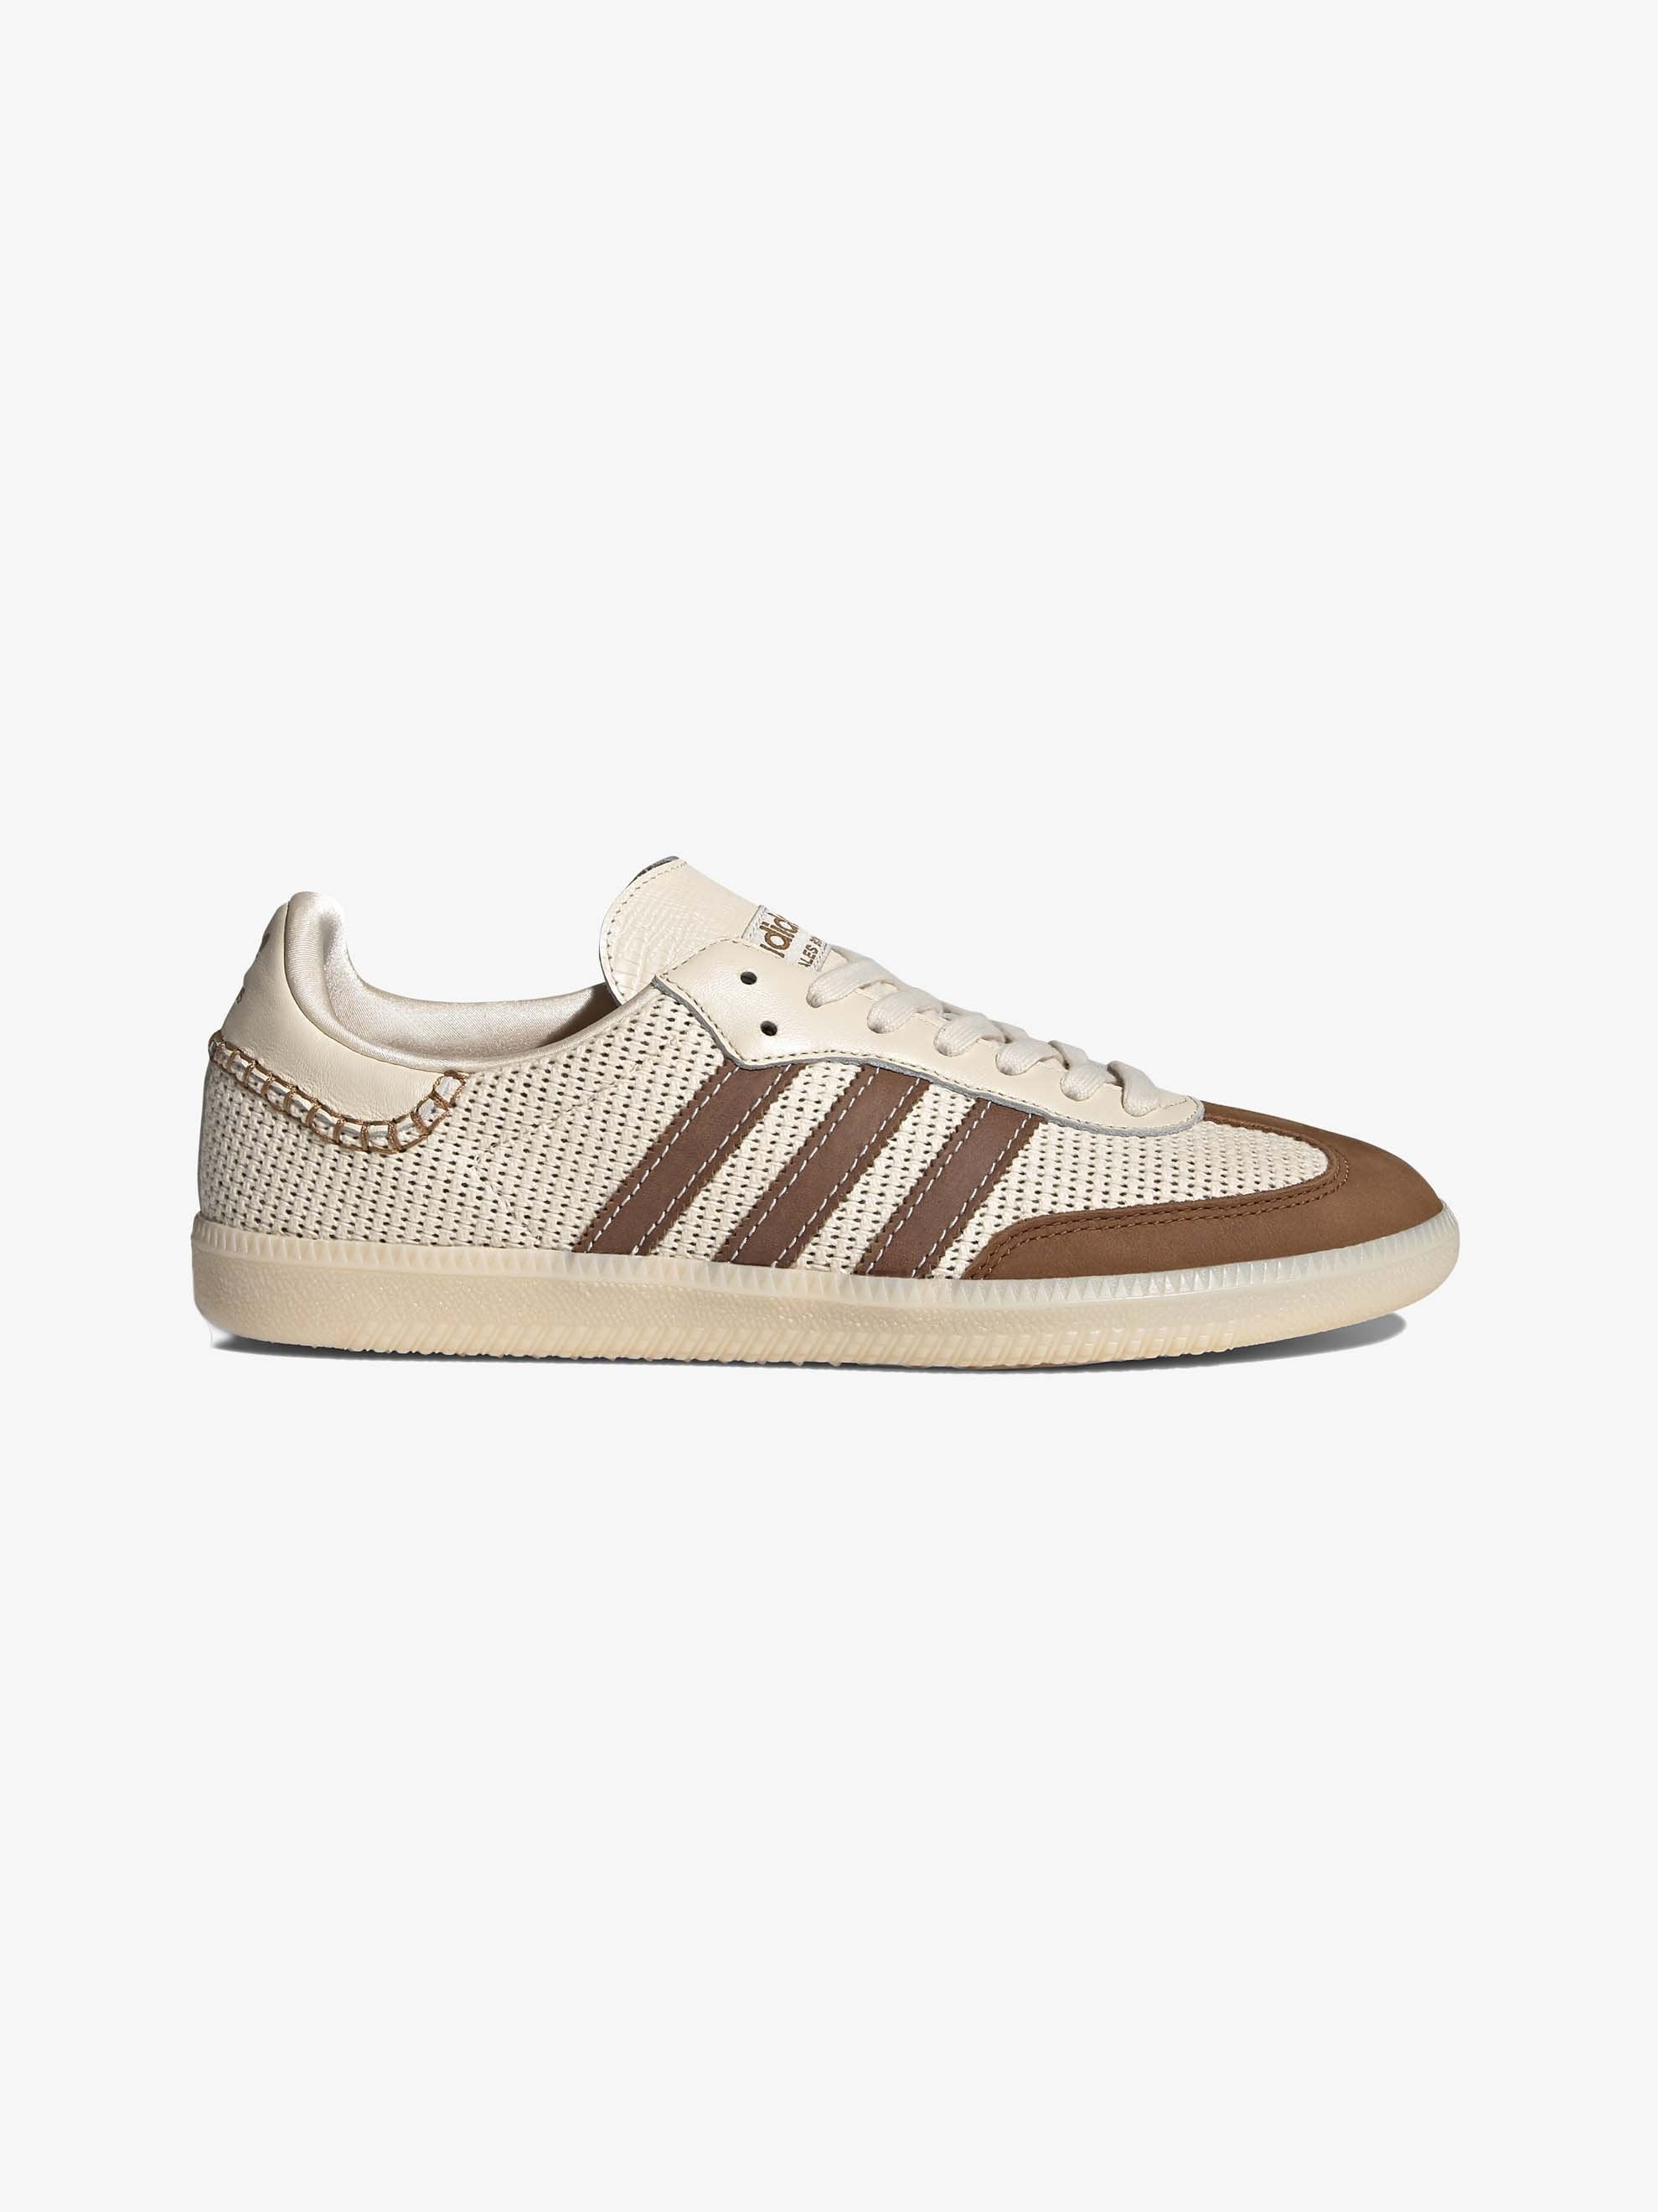 Cream White / Brown Adidas x Wales Bonner Samba 1